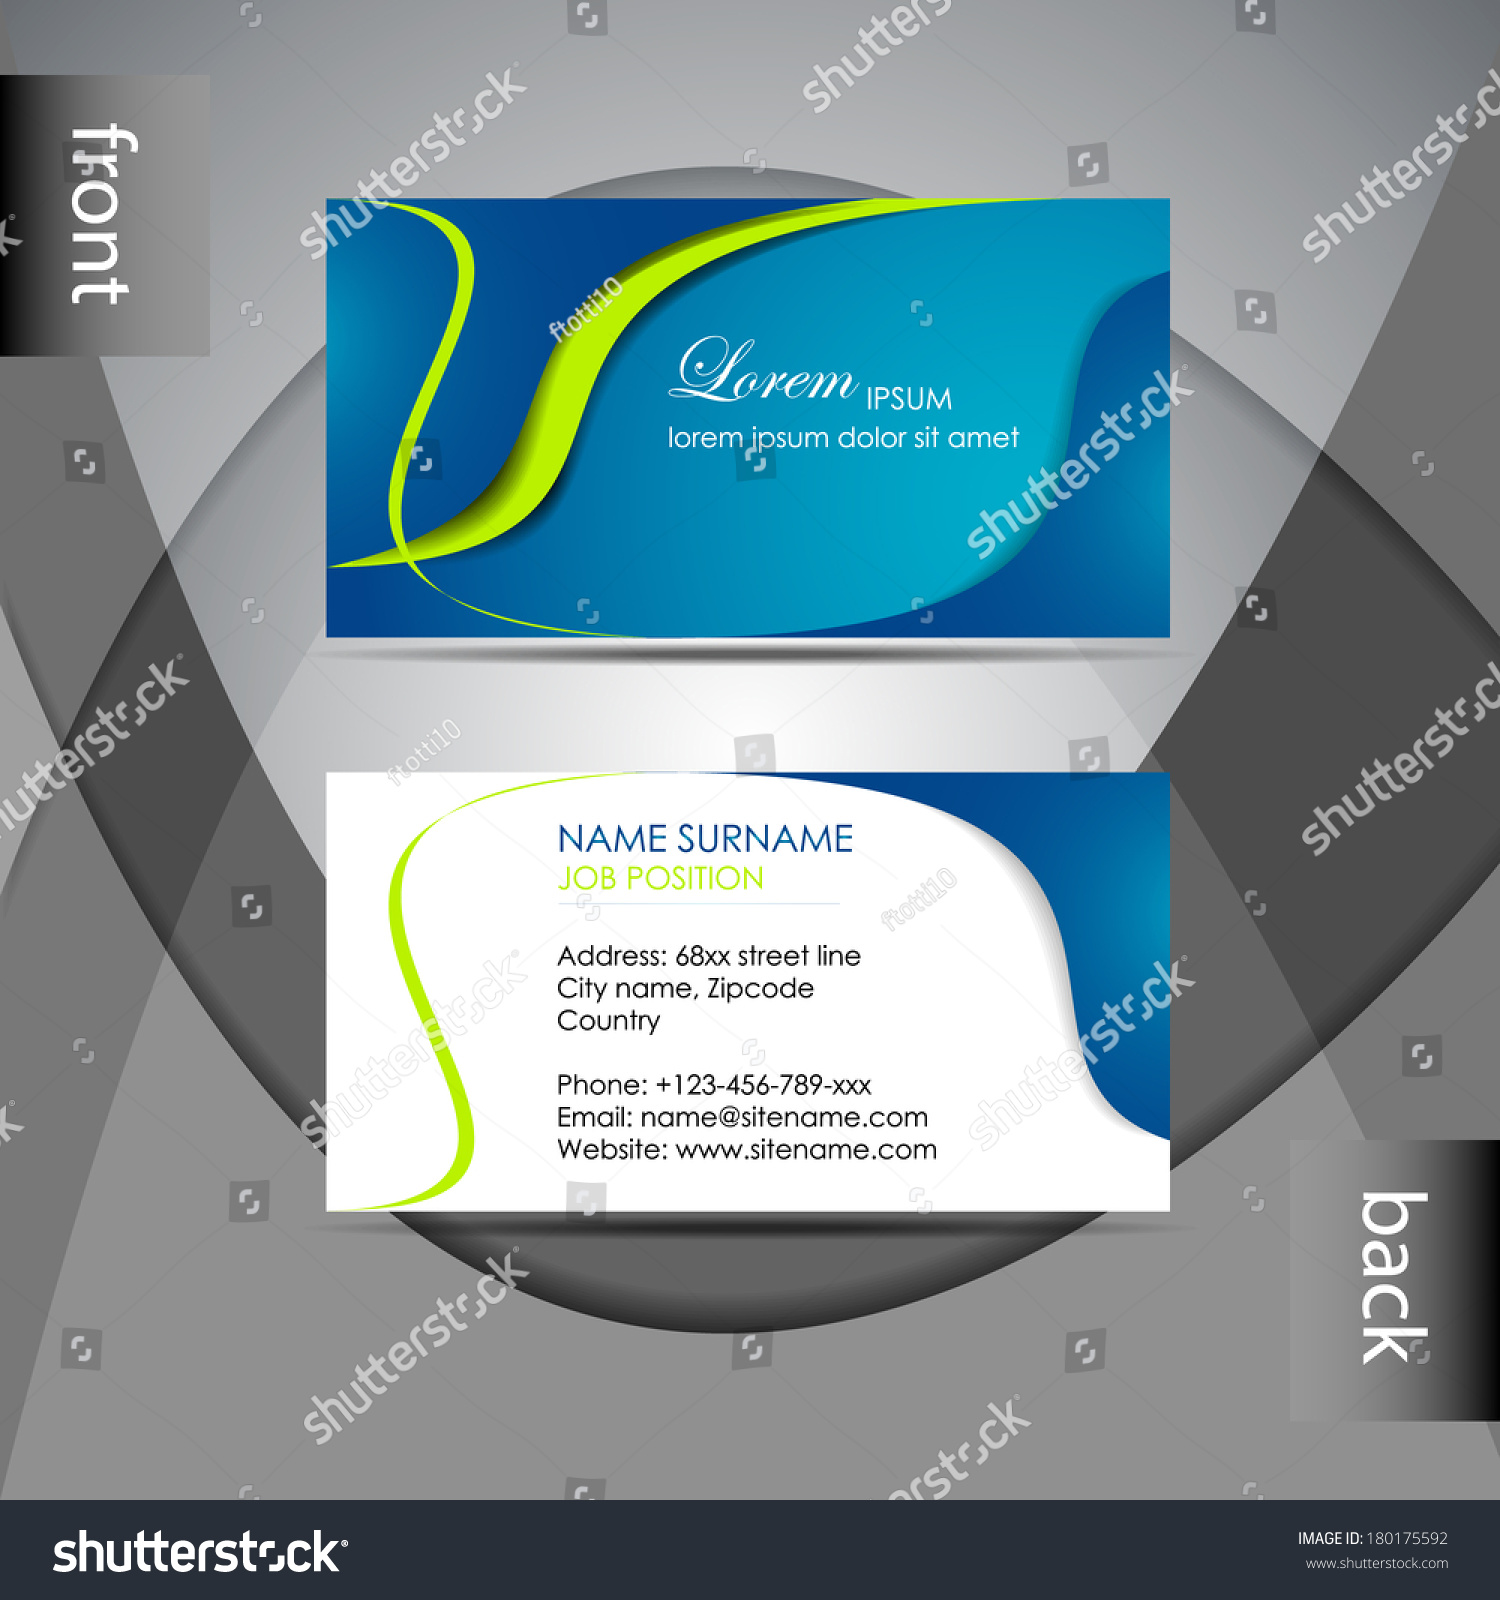 Abstract Professional Business Card Template Visiting Stock Vector - Professional business card templates